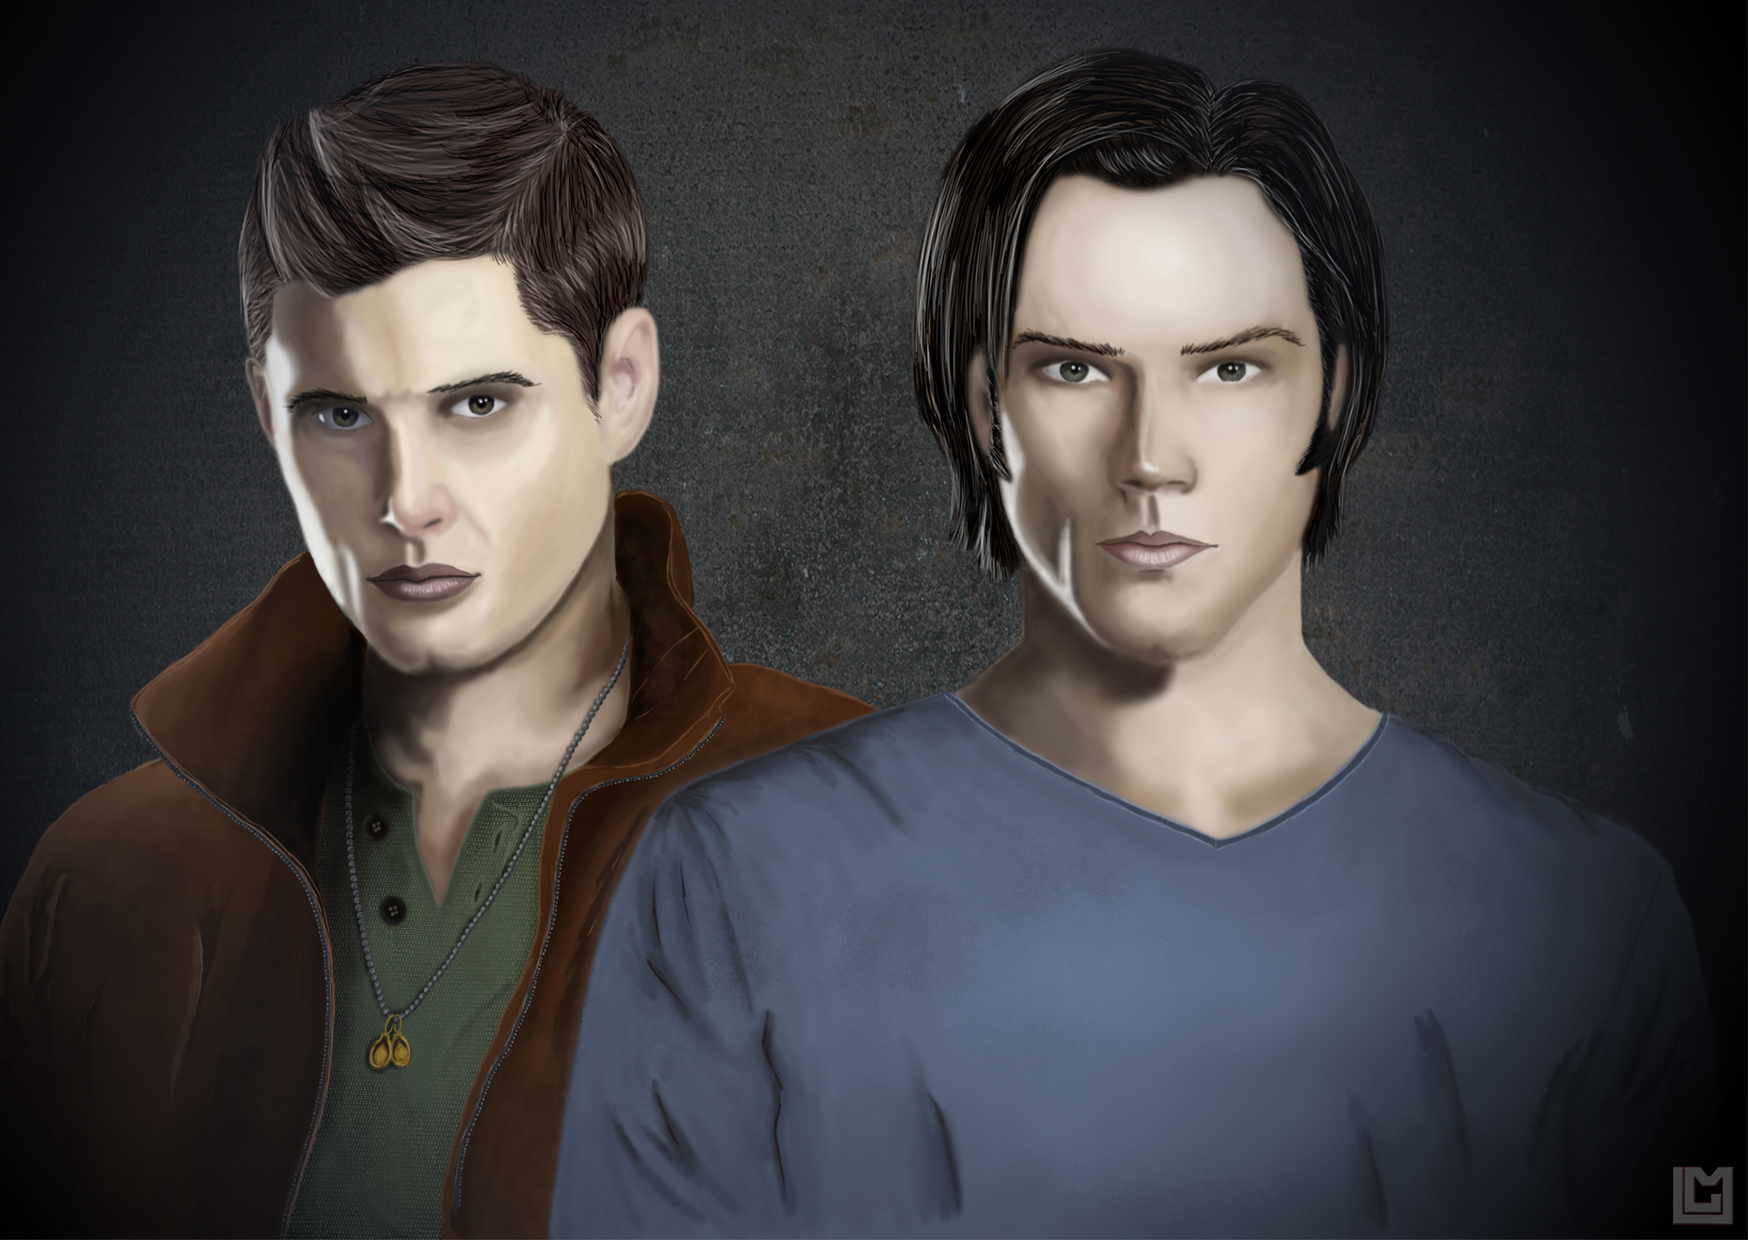 WinchesterBoys